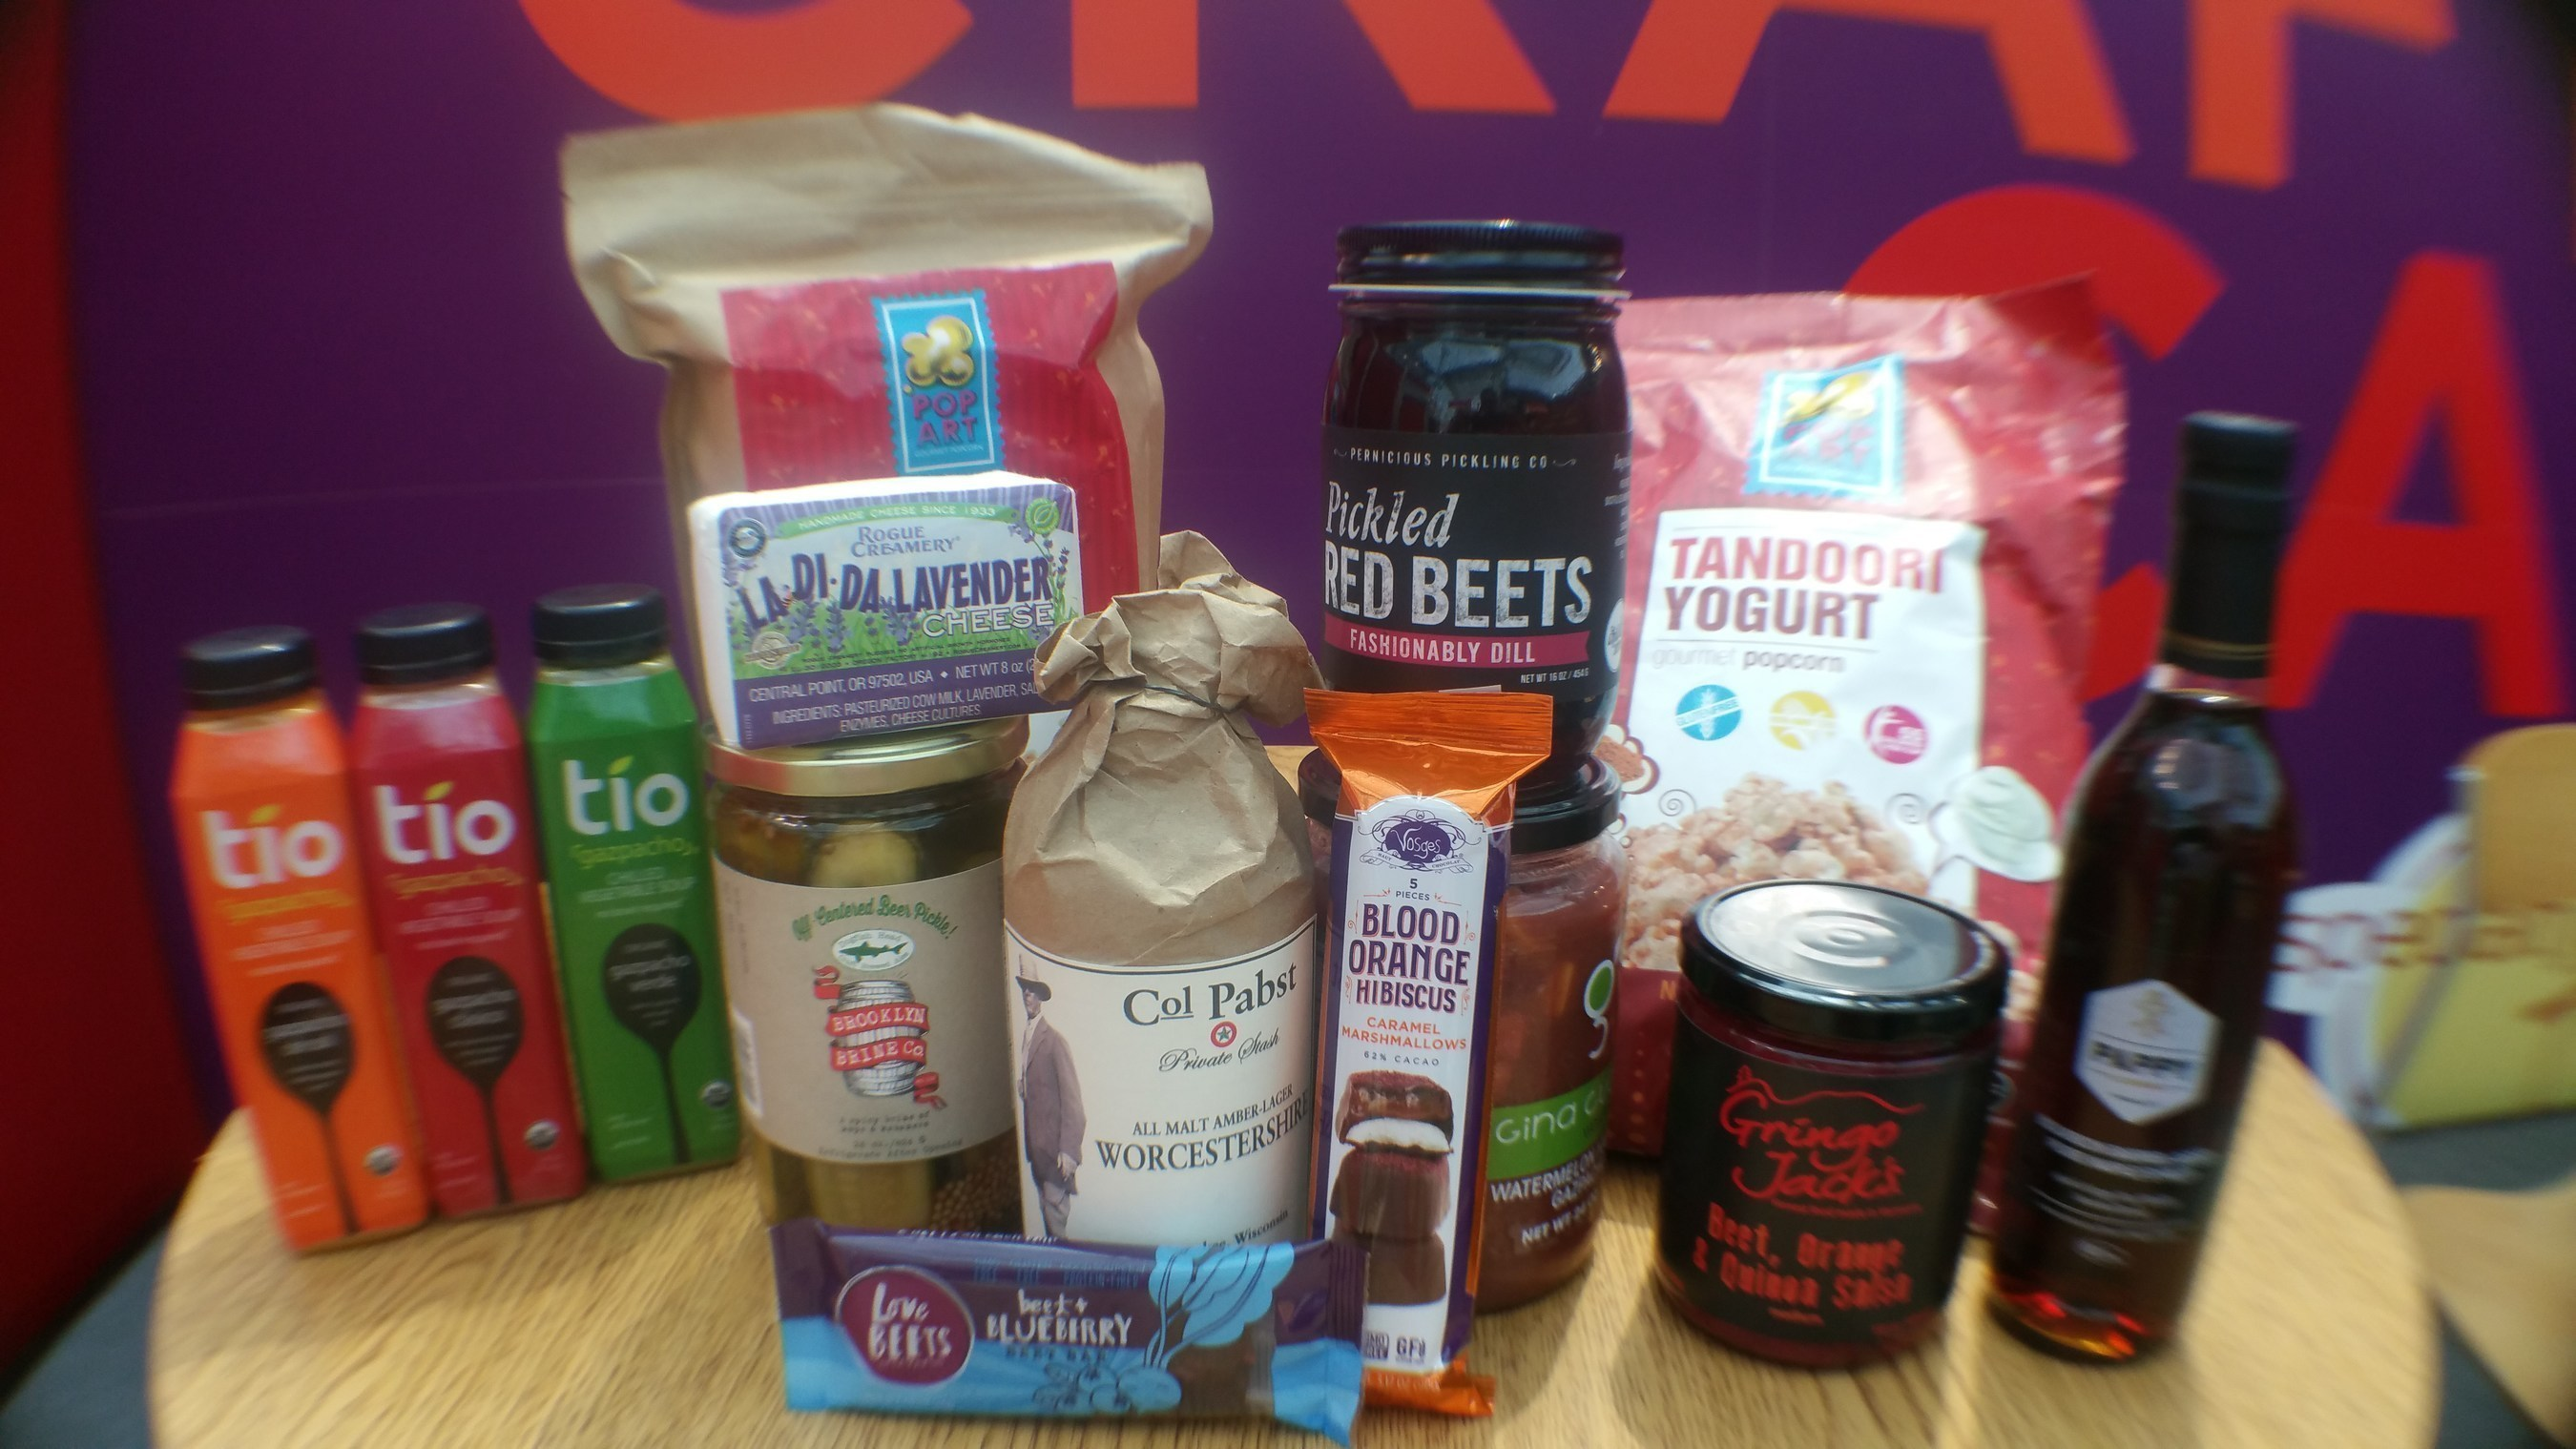 Gazpacho, Flowers, Beets top Trends at Summer Fancy Food Show